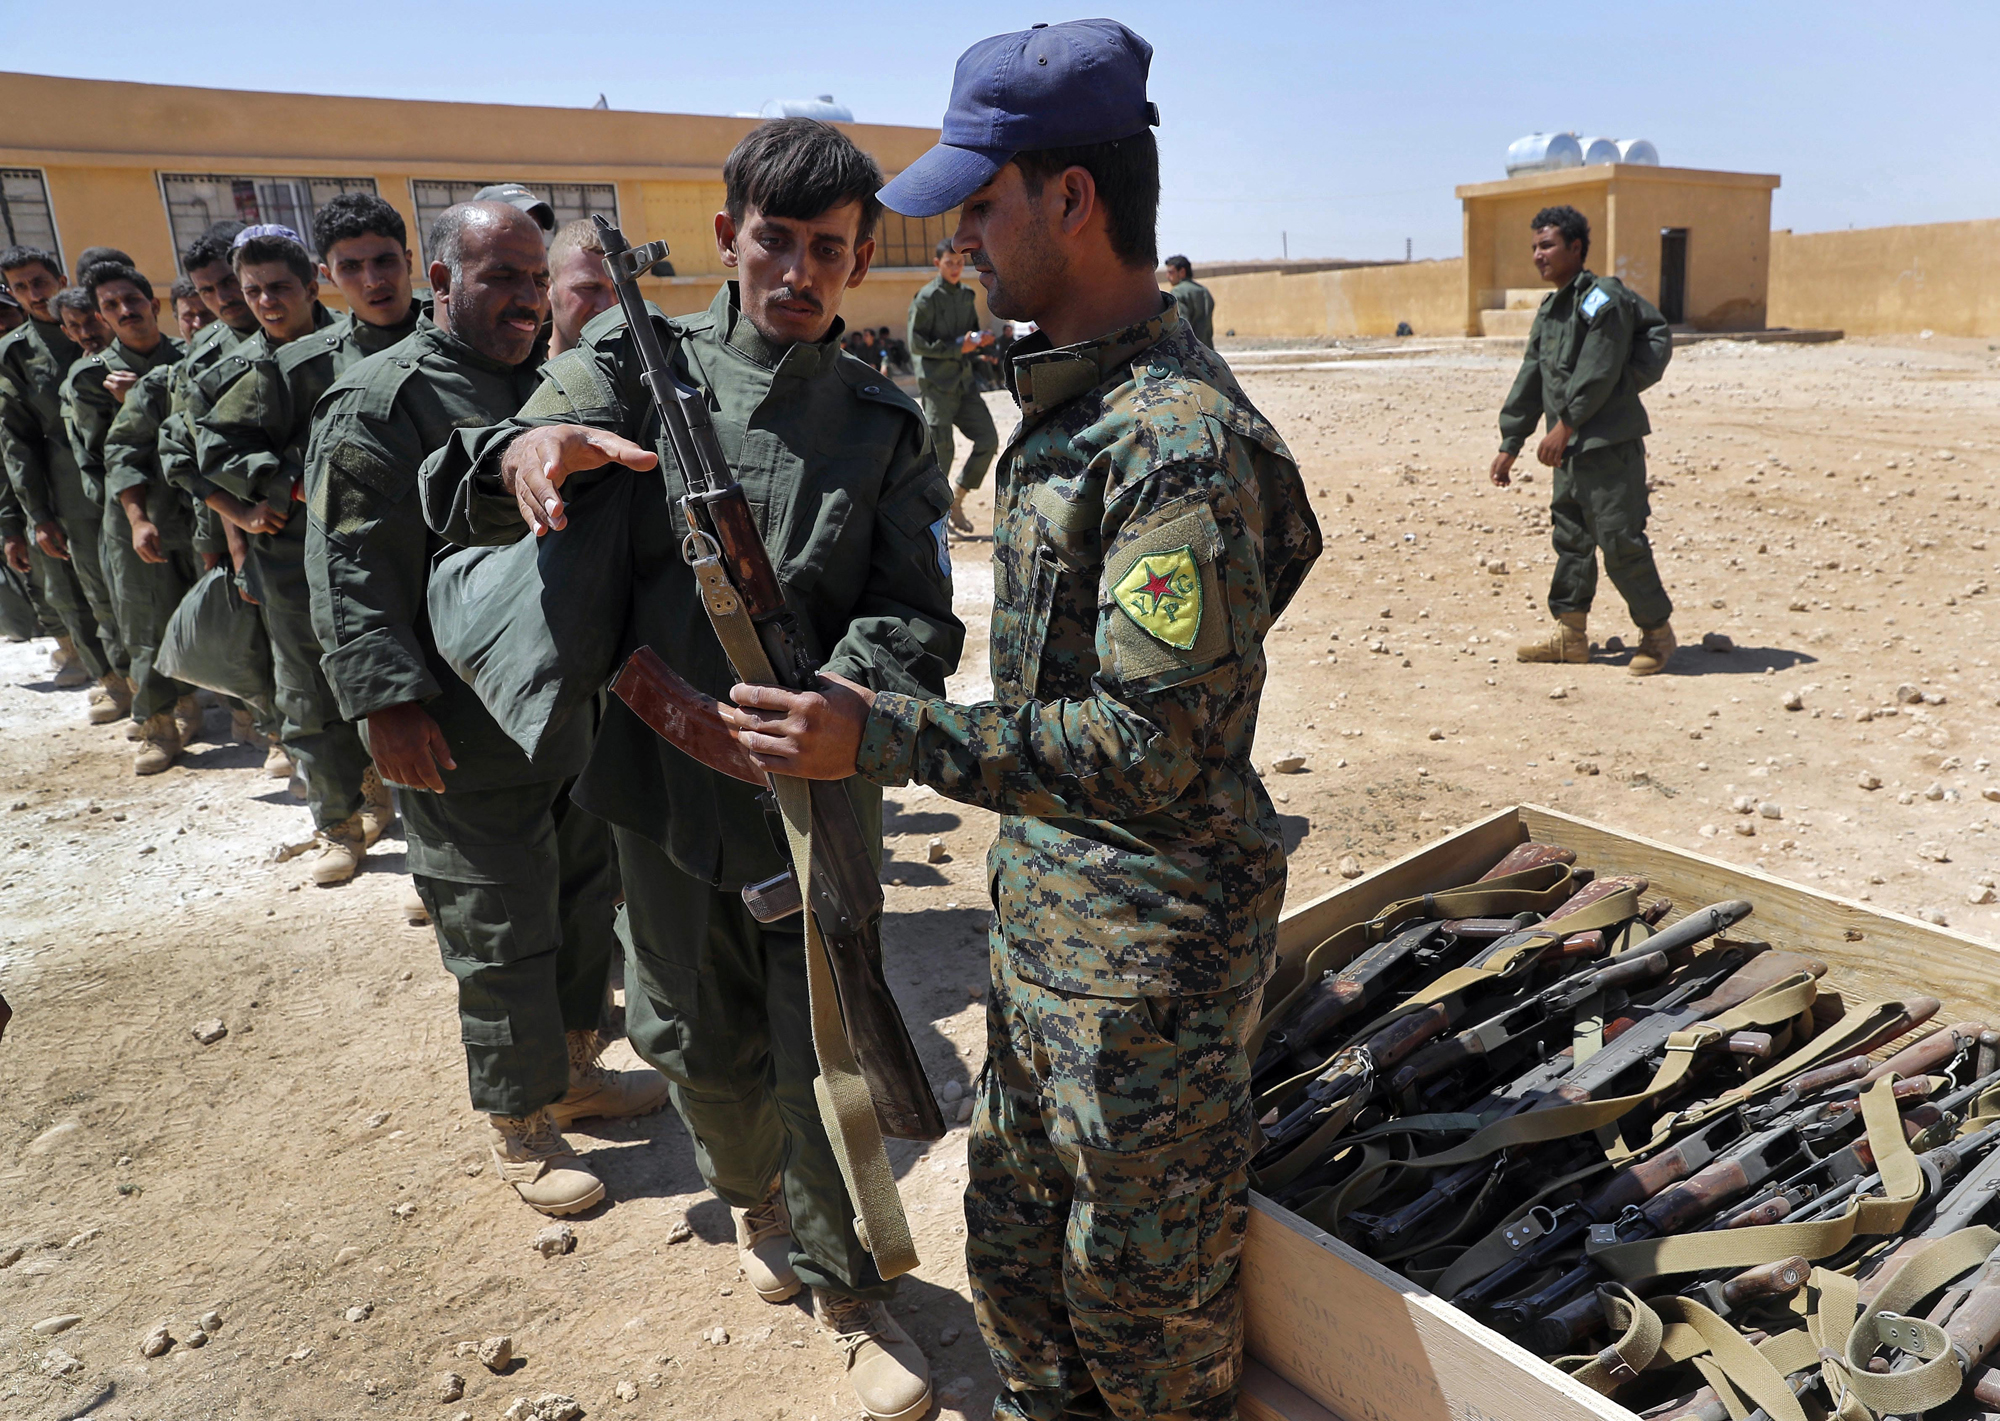 Some 250 residents join US-trained security force for Raqqa